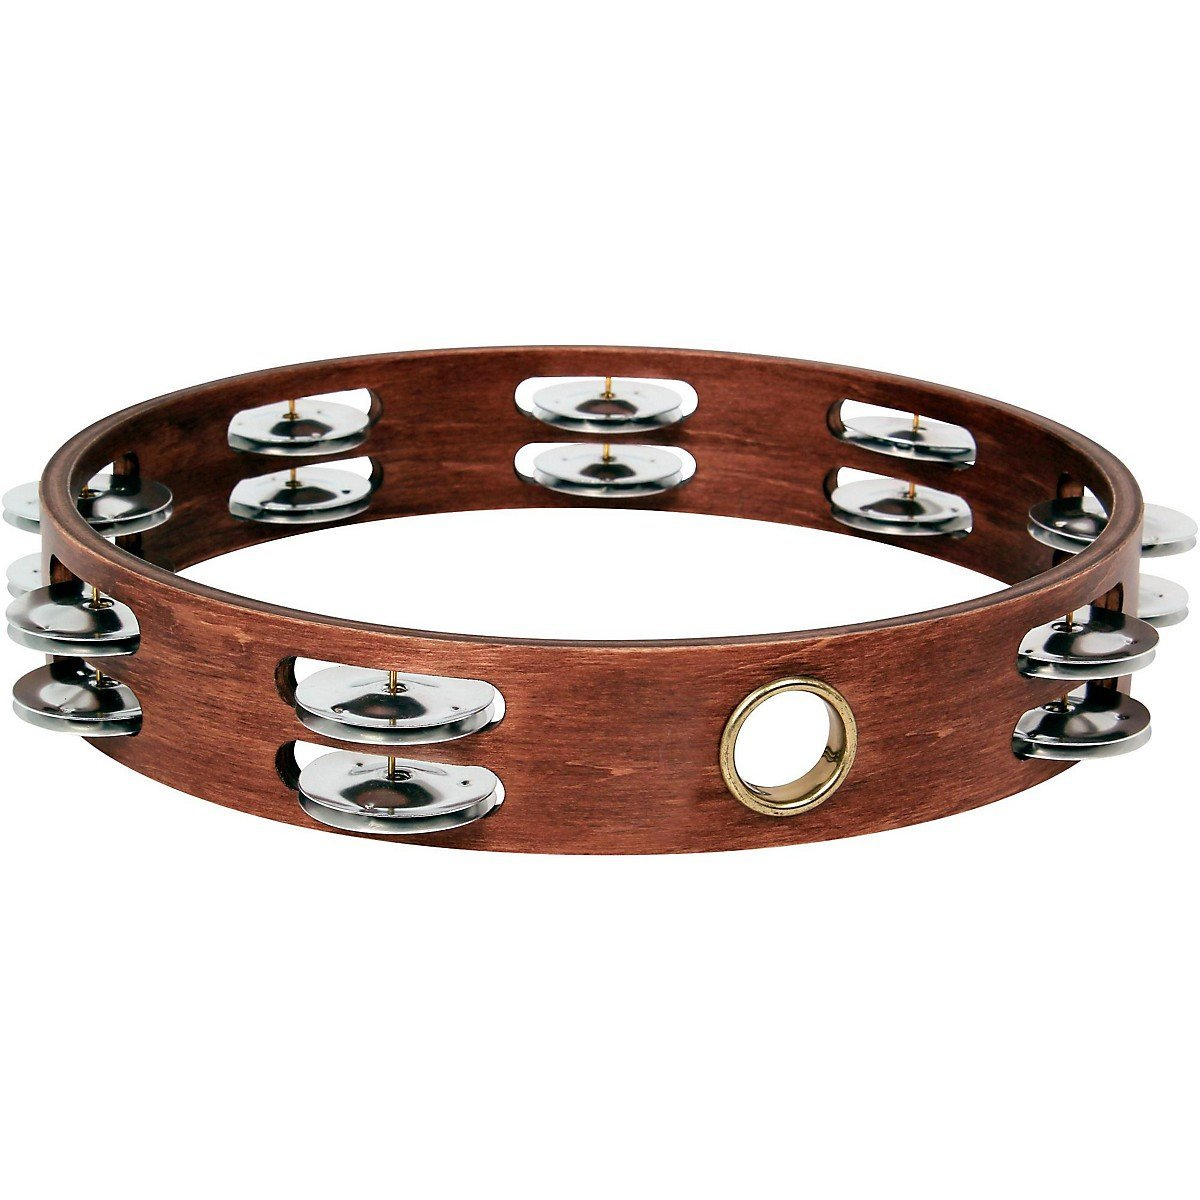 Gon Bops Double Row Wooden Tambourine by Gon Bops